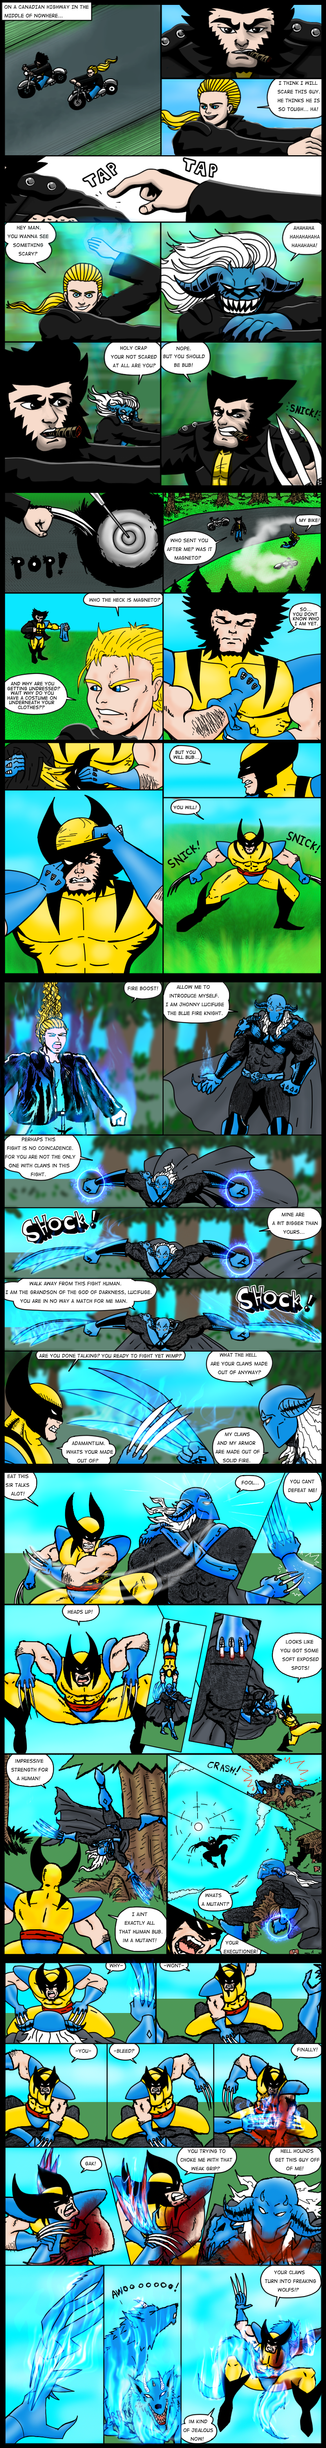 WOLVERINE vs DEMON FUSE page 1-5 by Jesse-the-art-maker